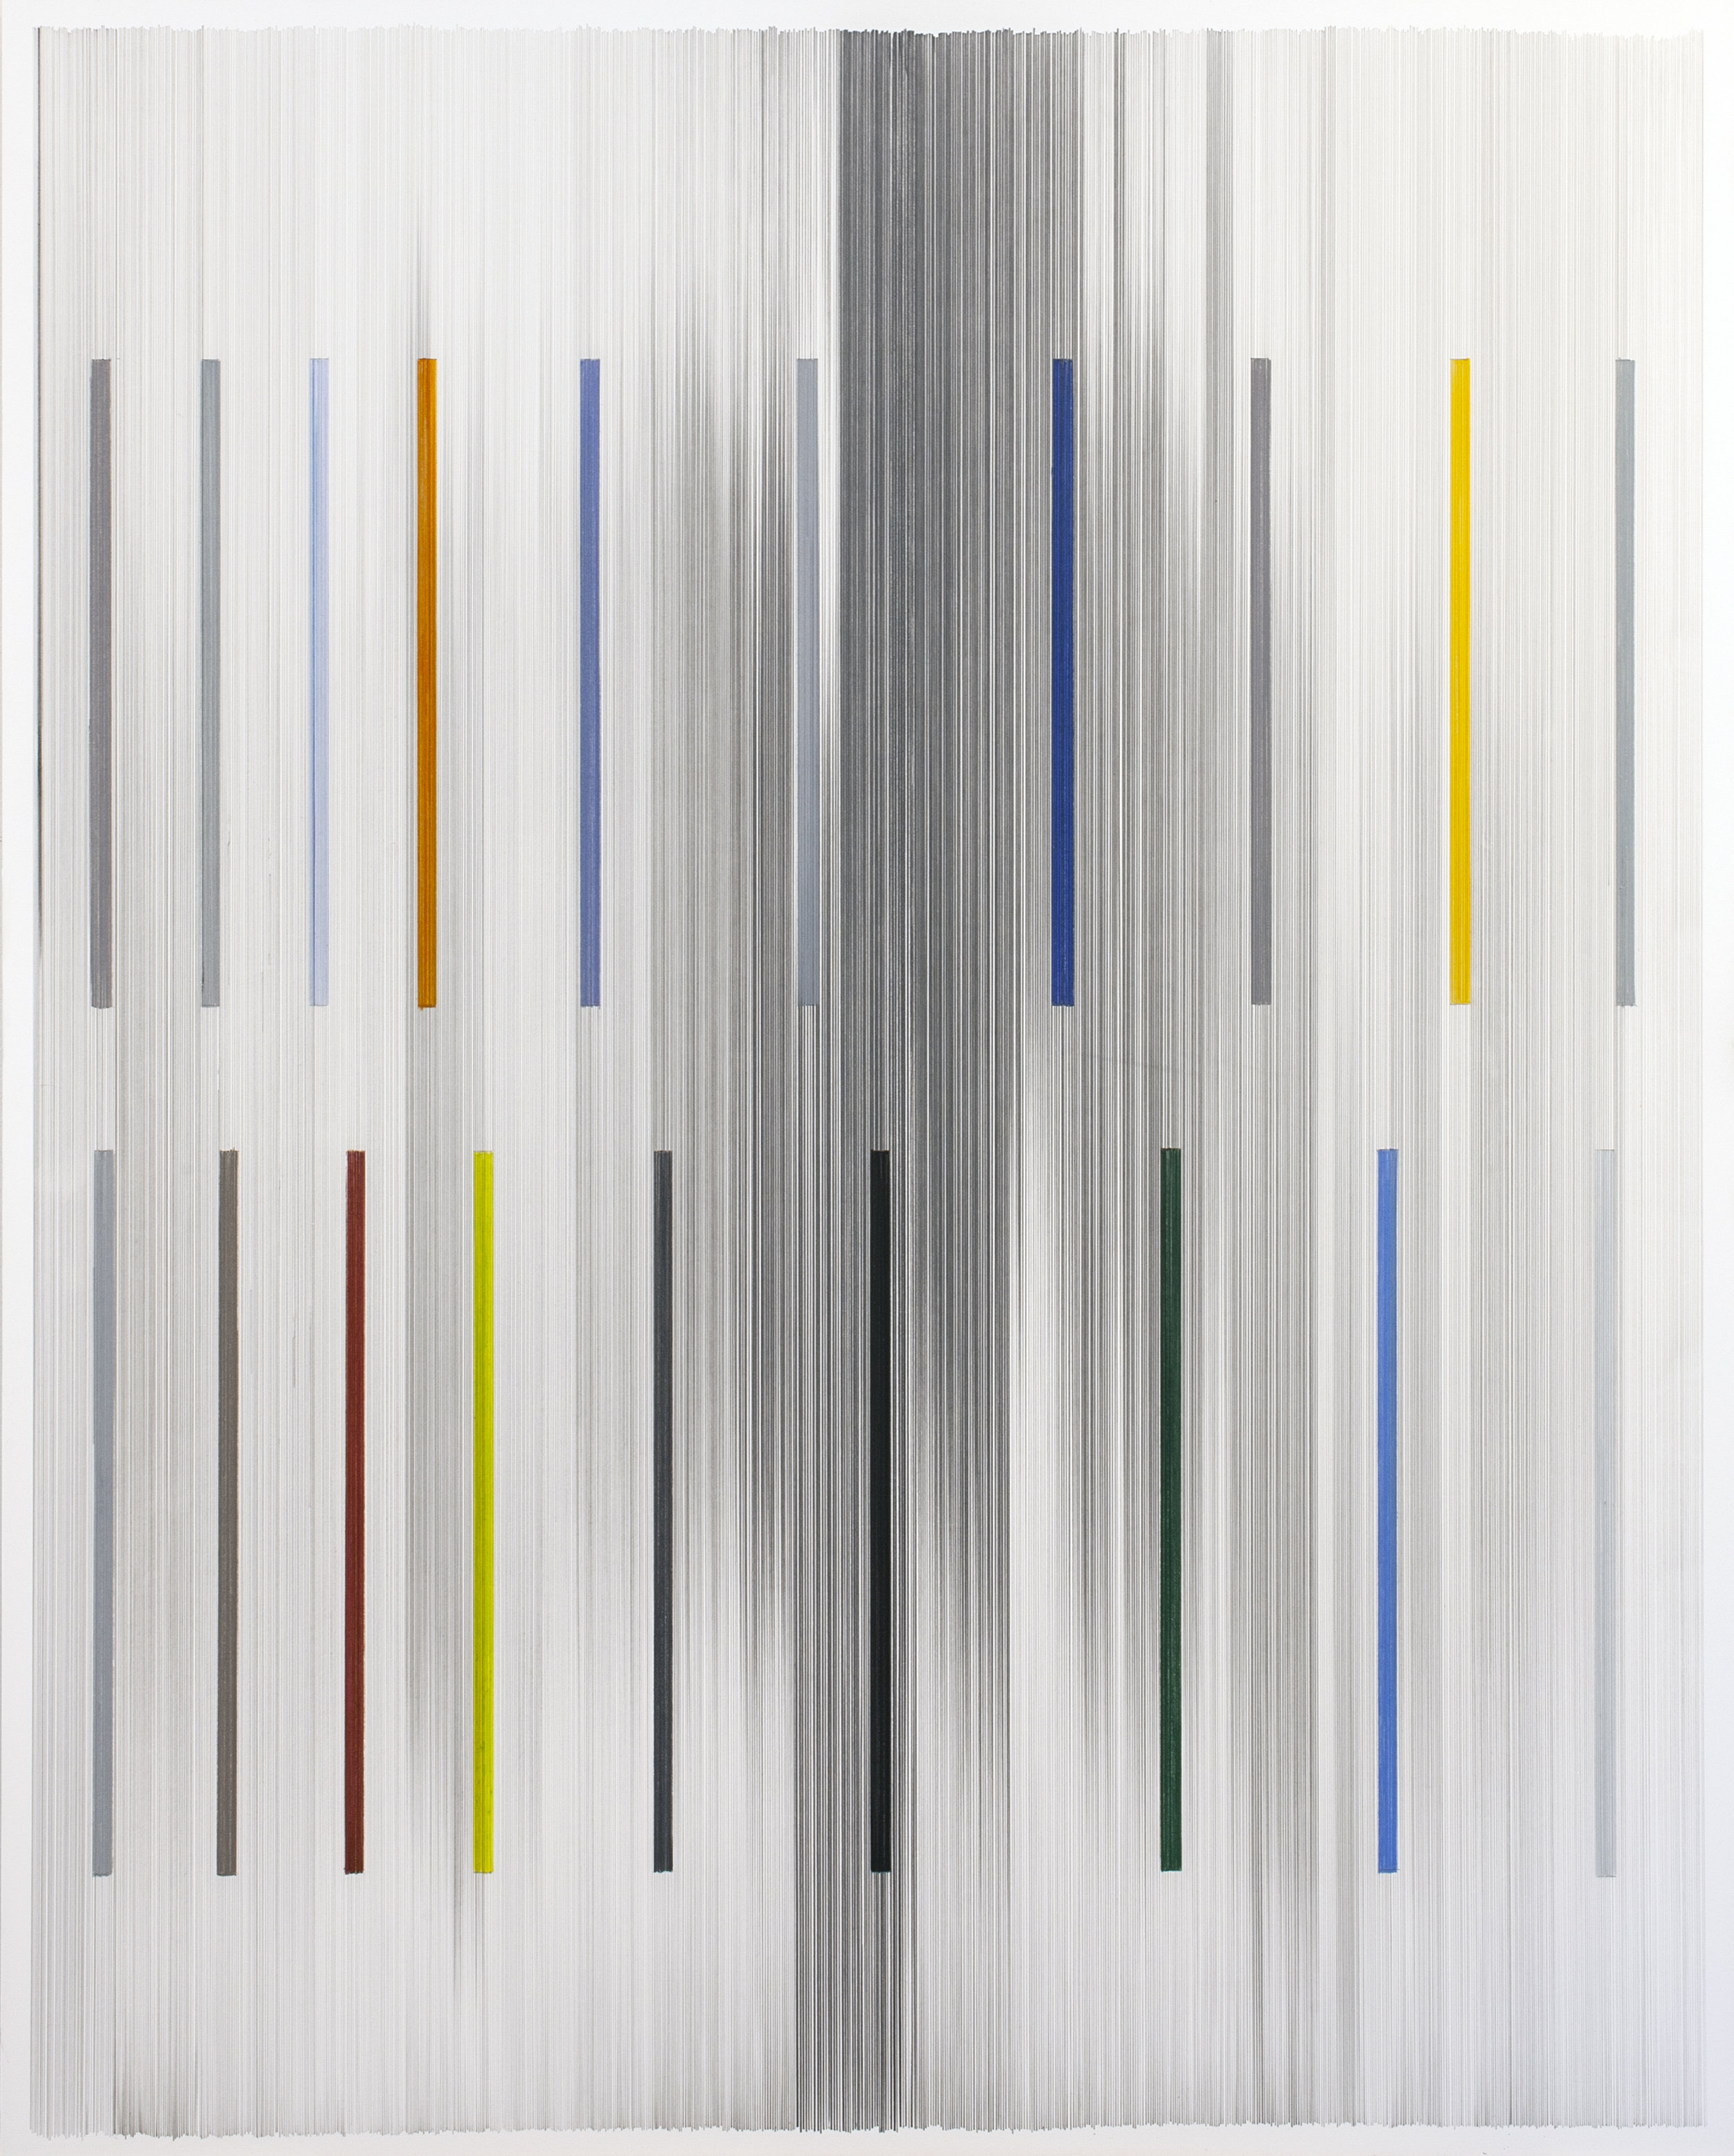 future construct 02  2019 graphite and colored pencil on mat board 60 by 48 inches